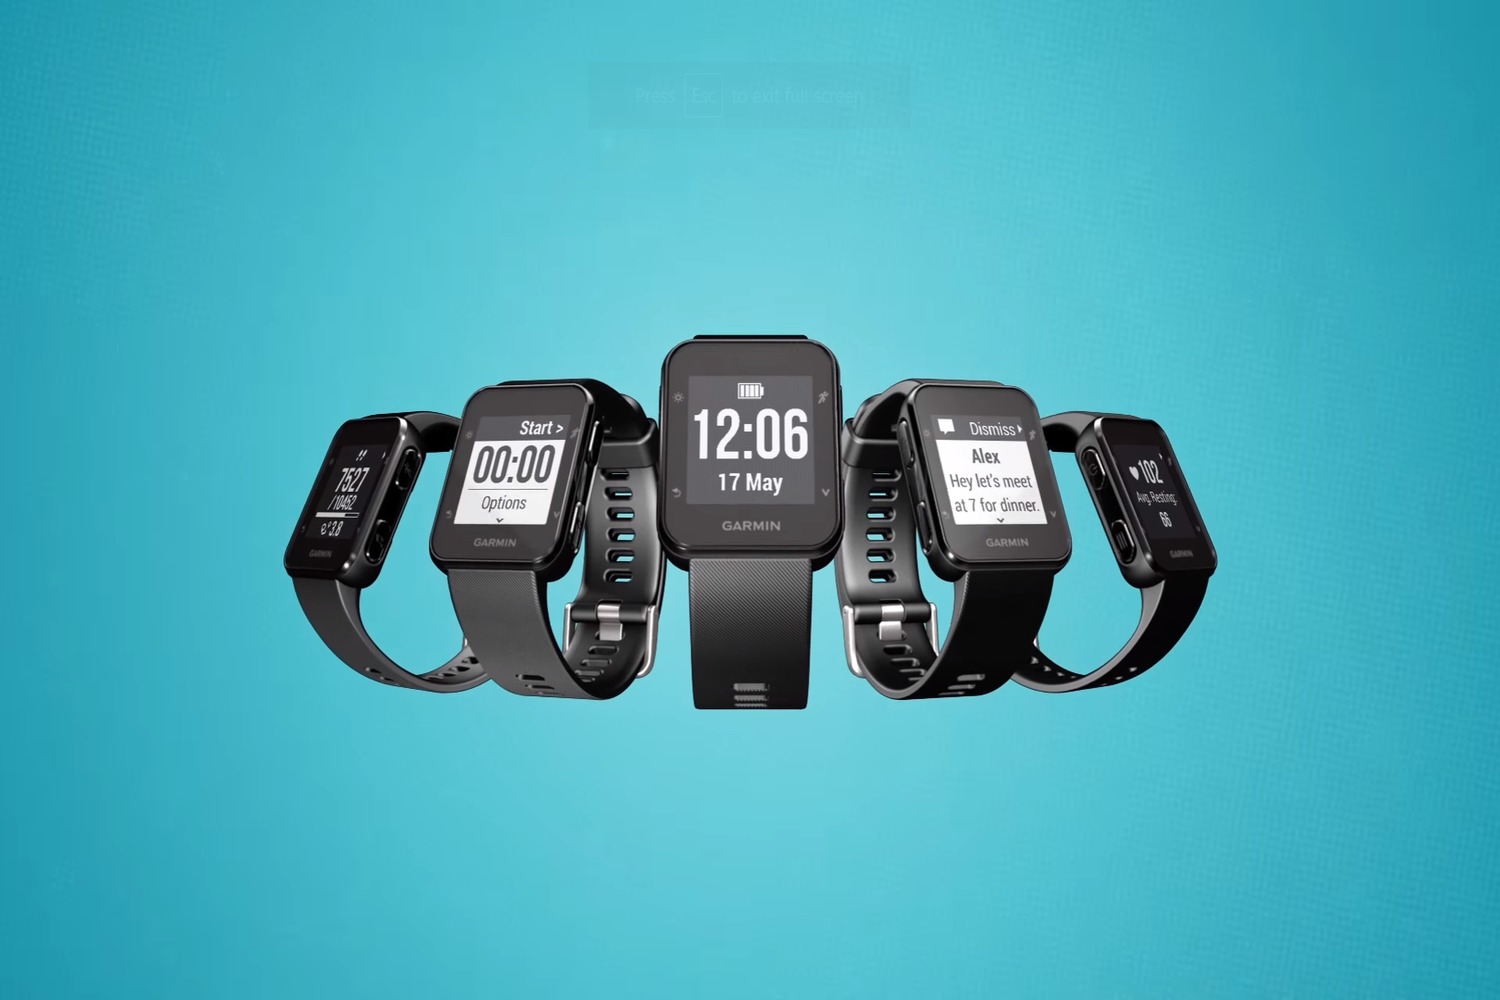 Garmin Connect Mobile App >> Garmin's new Forerunner 35 is a long-lasting, water-resistant fitness tracker